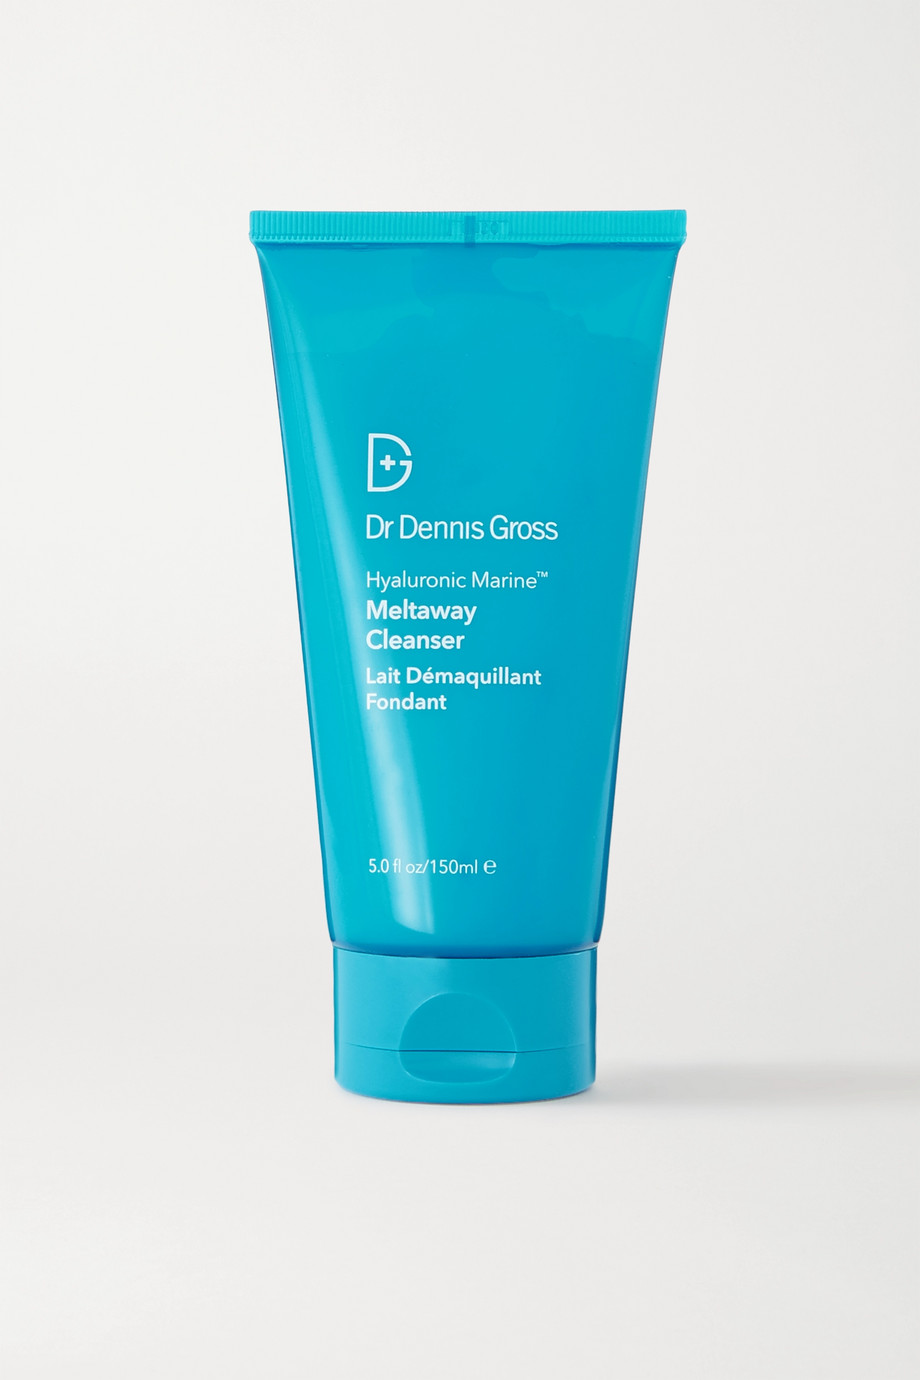 Dr. Dennis Gross Skincare Hyaluronic Marine™ Meltaway Cleanser, 150 ml – Cleanser